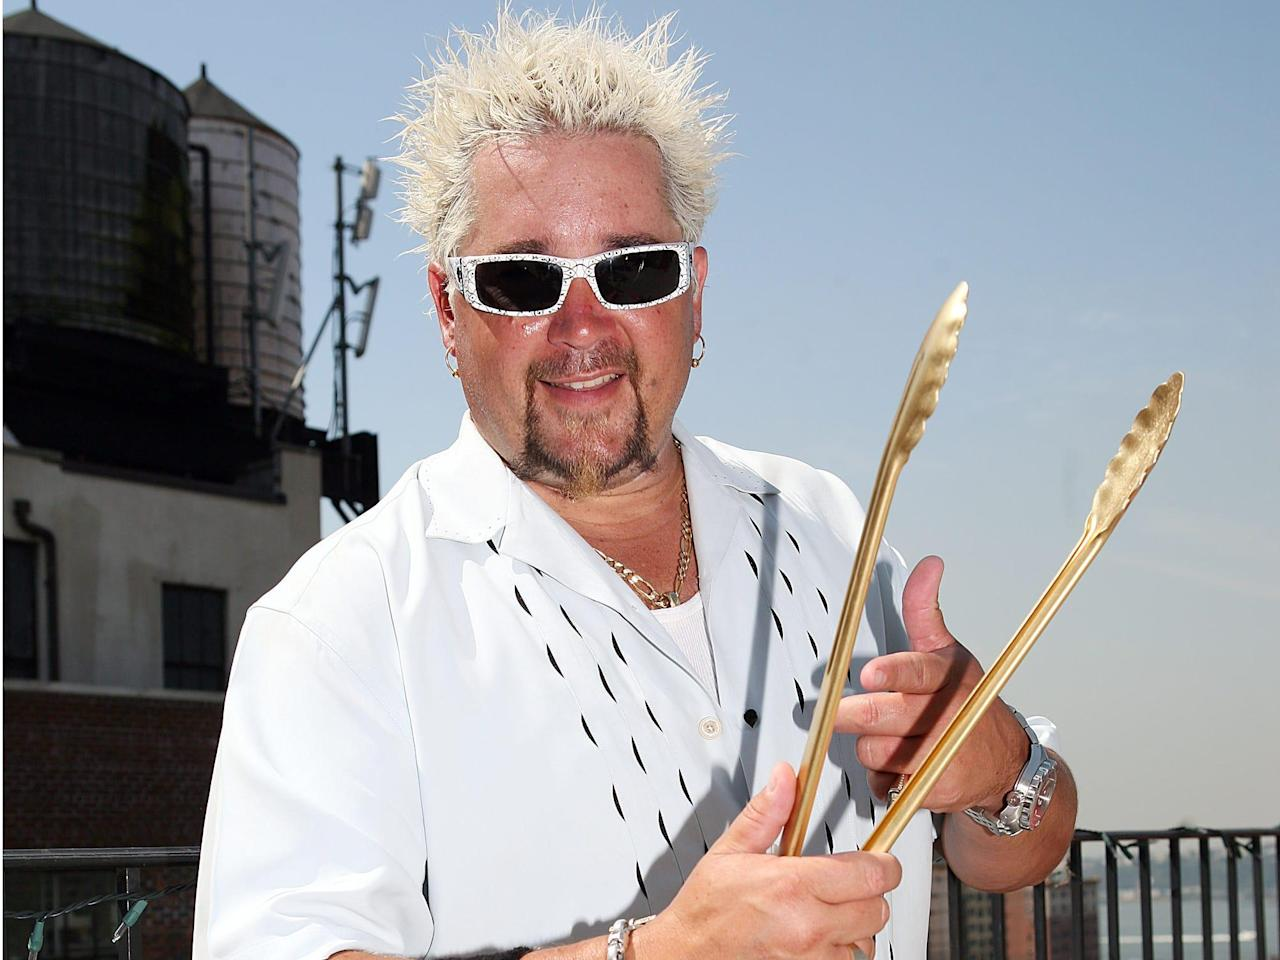 11 things you didn't know about Guy Fieri